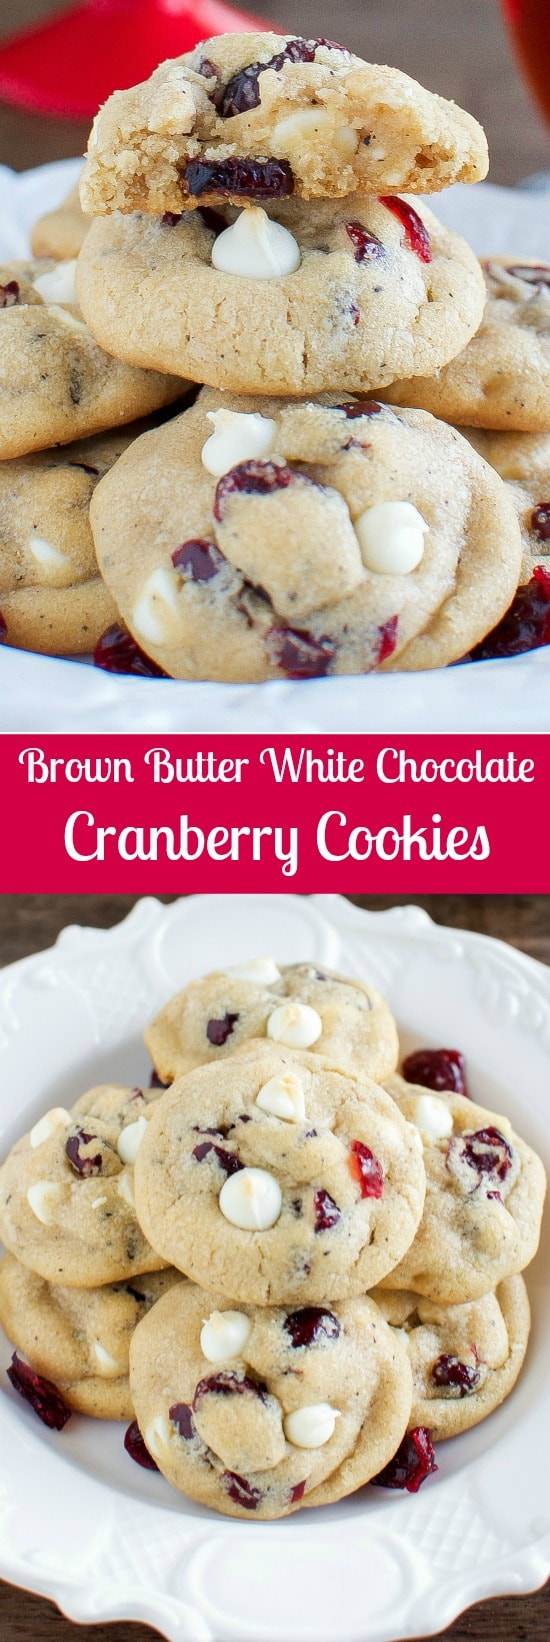 Brown Butter White Chocolate Cranberry Cookies - Easy Christmas Cookie Recipe!